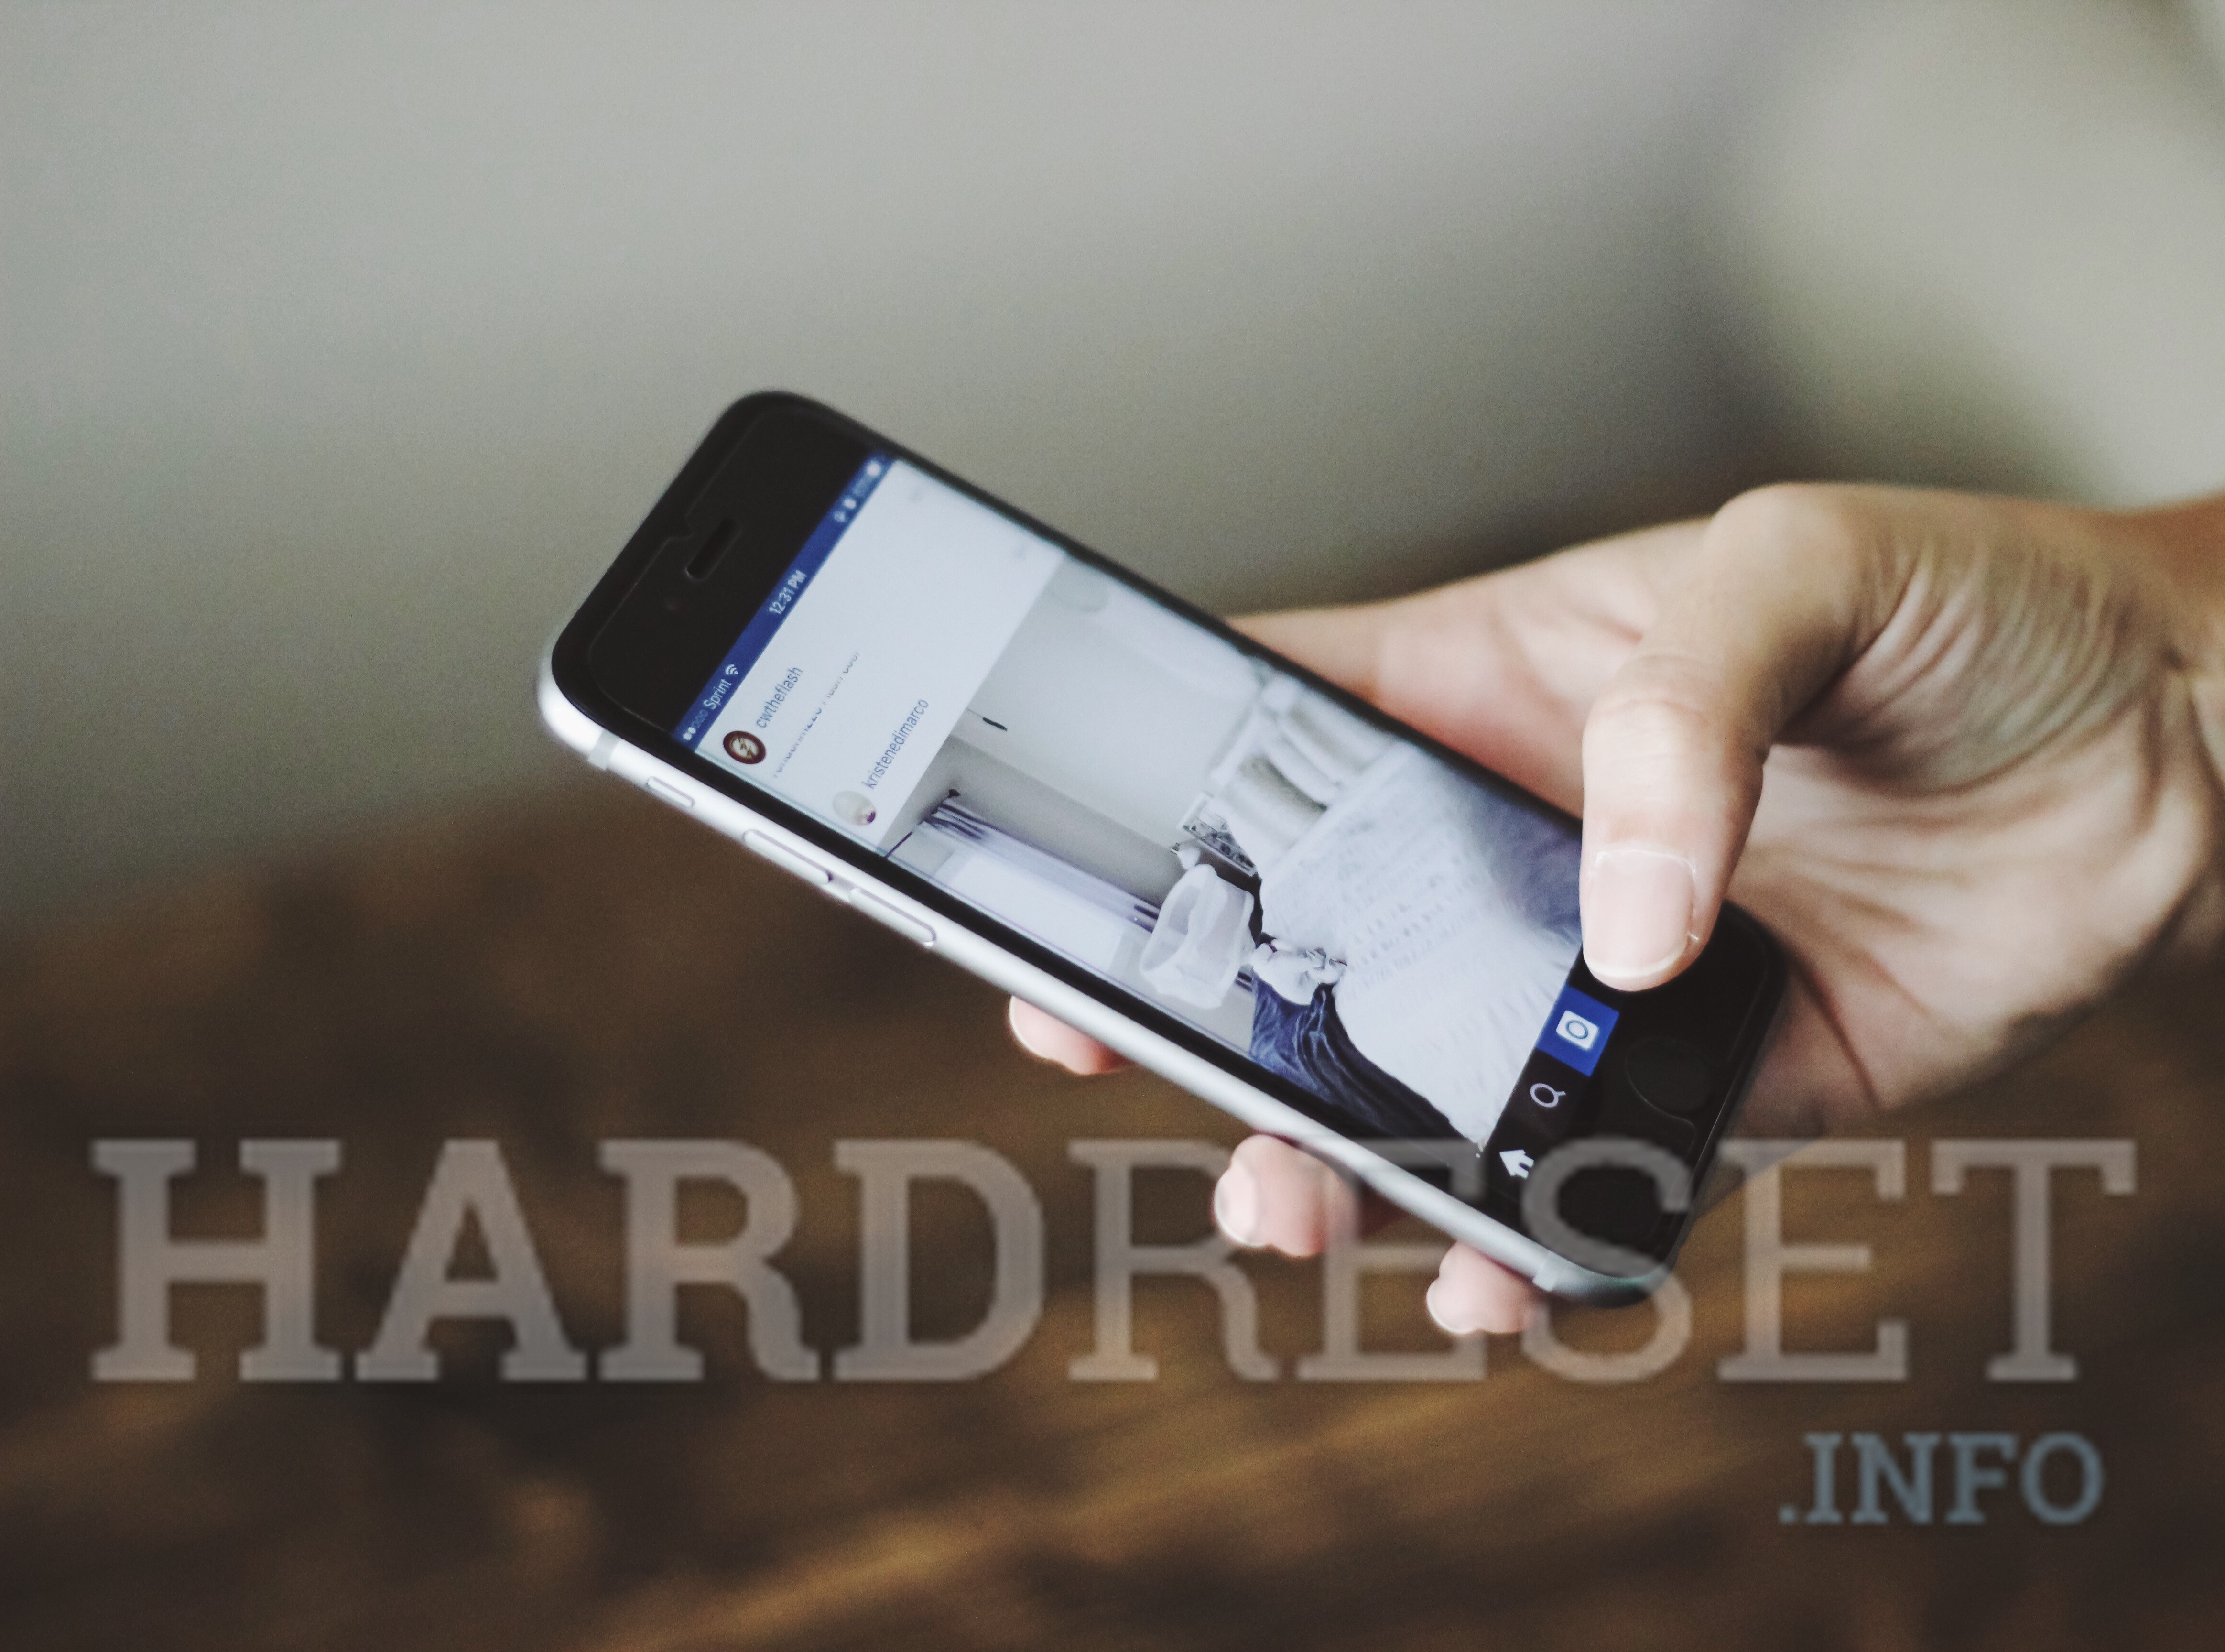 How to take a screenshot on Apple iPhone? - article image on hardreset.info